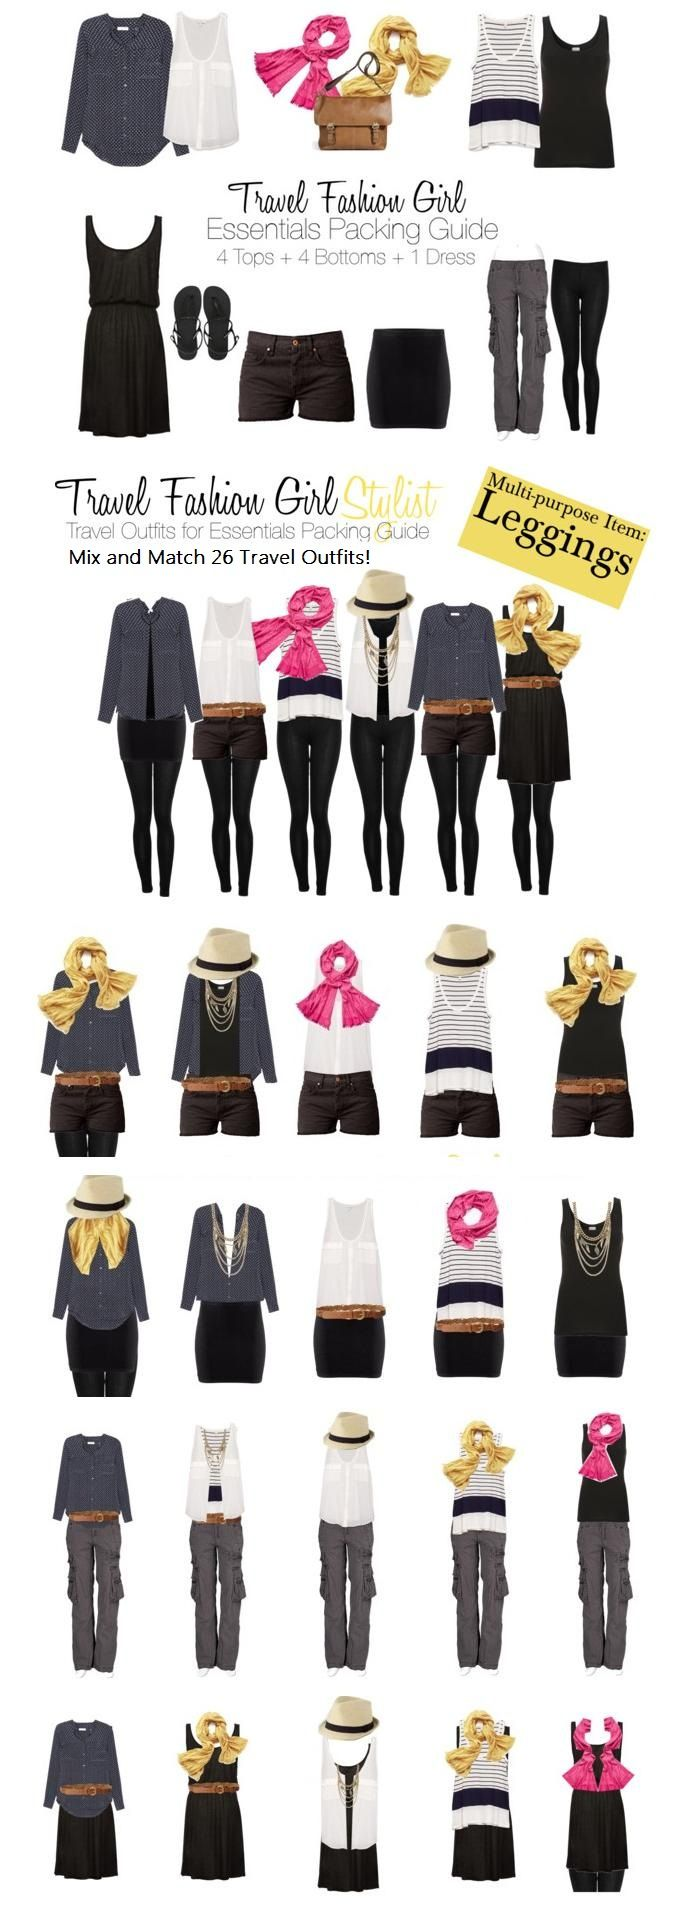 mix and match 26 travel outfits with 8 pieces of clothing travel outfits via travelfashiongirl. Black Bedroom Furniture Sets. Home Design Ideas